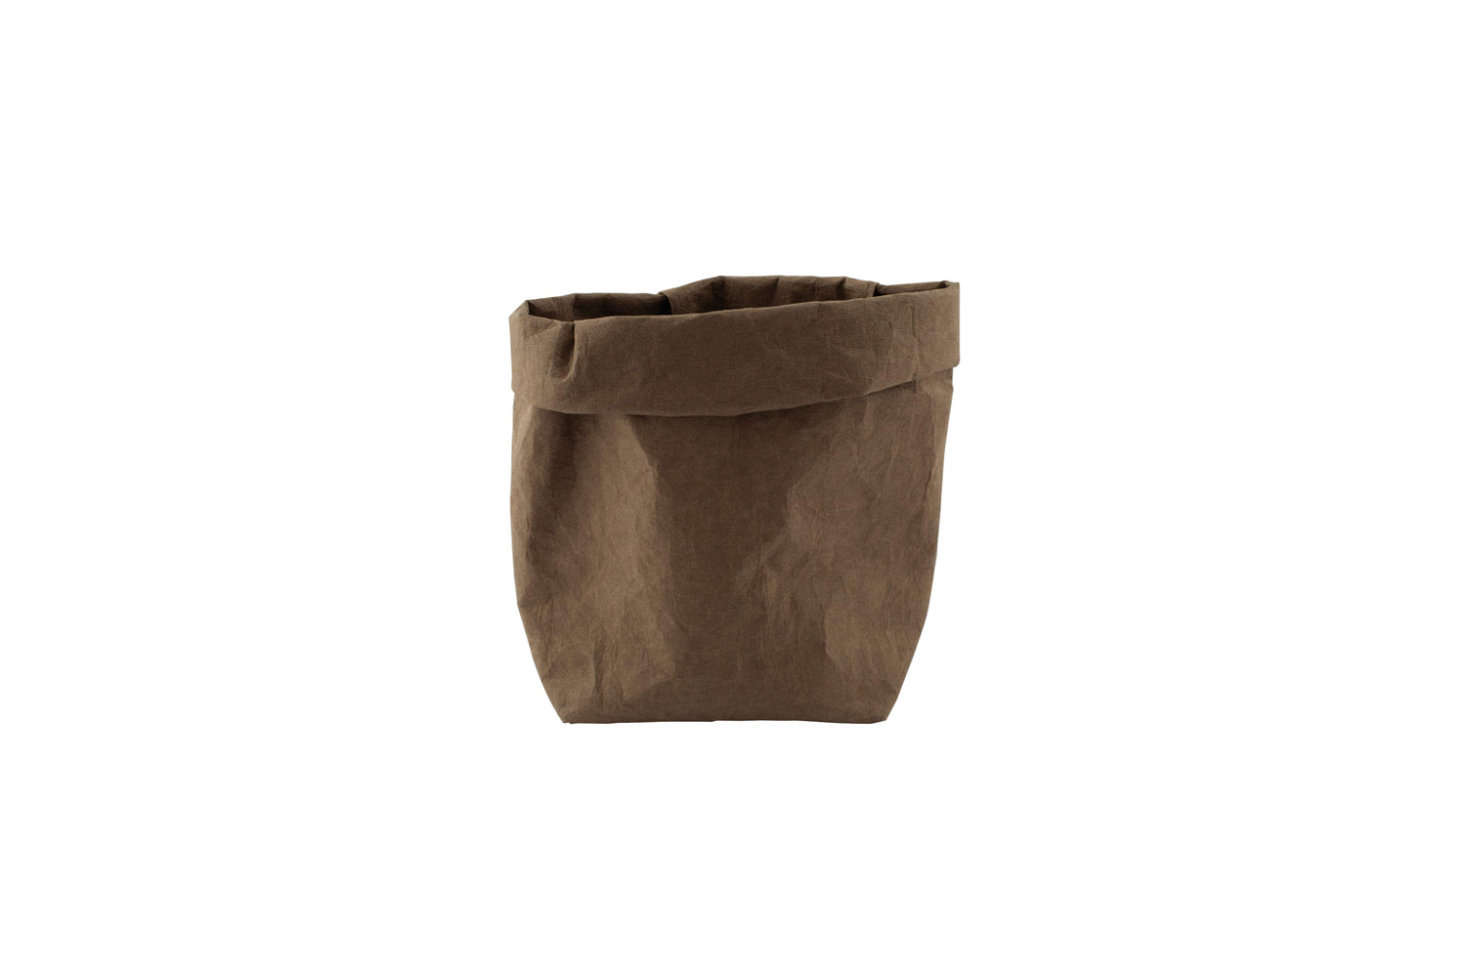 It looks like a leather bag, sort of, but it's made of cellulose fiber and is reusable. It's great for keeping cleaning brushes corralled or for storing rags under the sink. The Redecker Medium Leather Look Tote Bag is $22.99 on Amazon Prime.